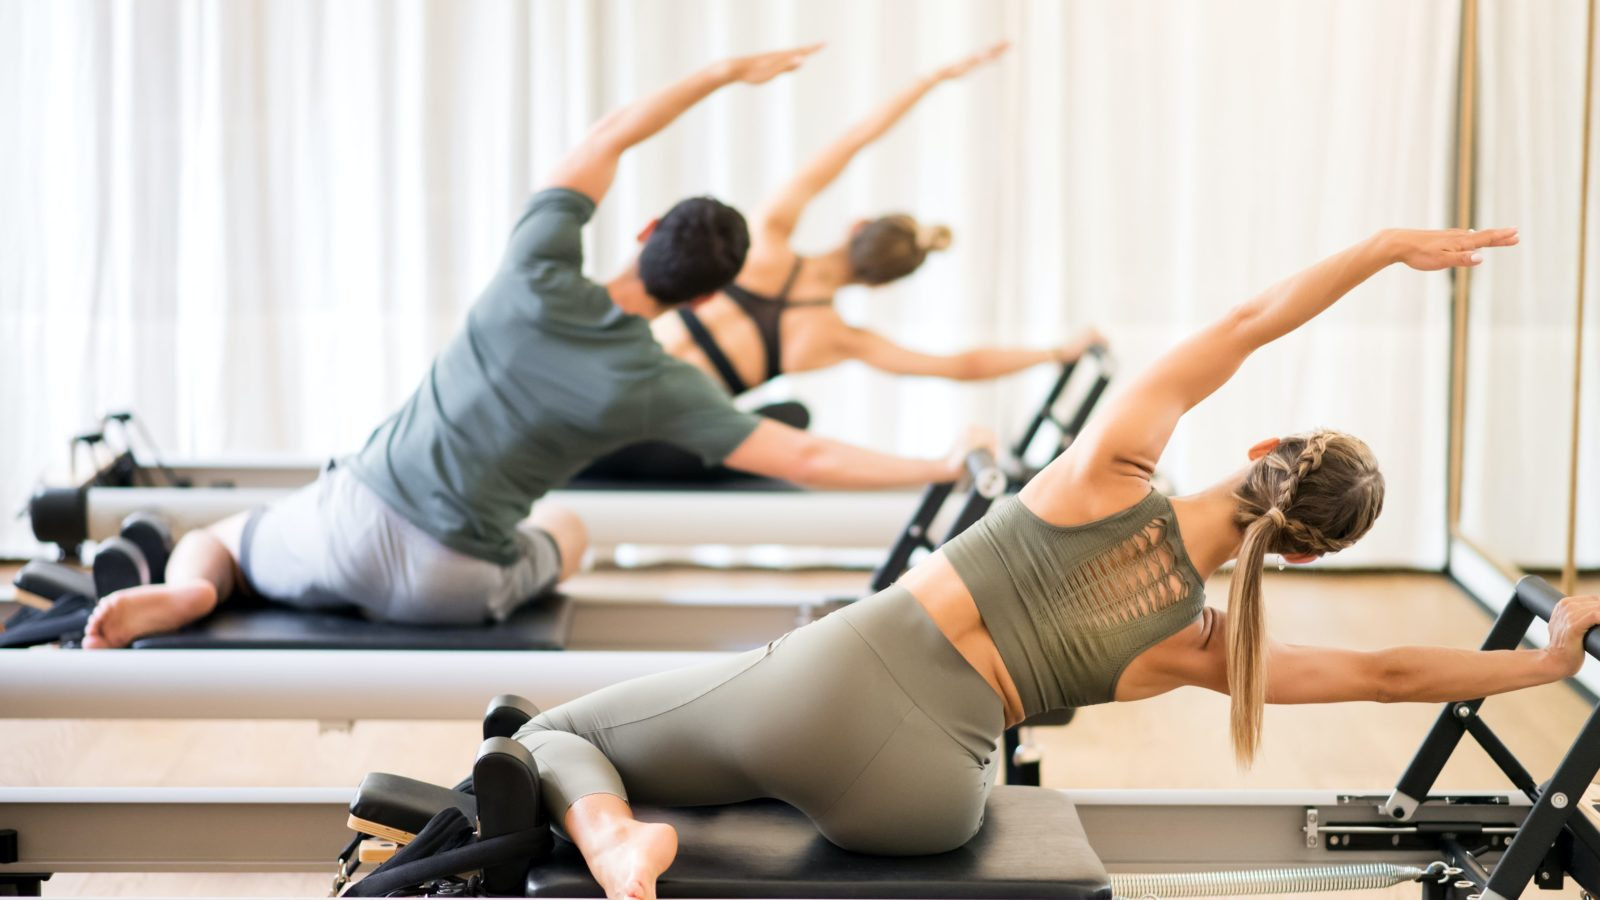 Post-iso fitness guide: Pilates